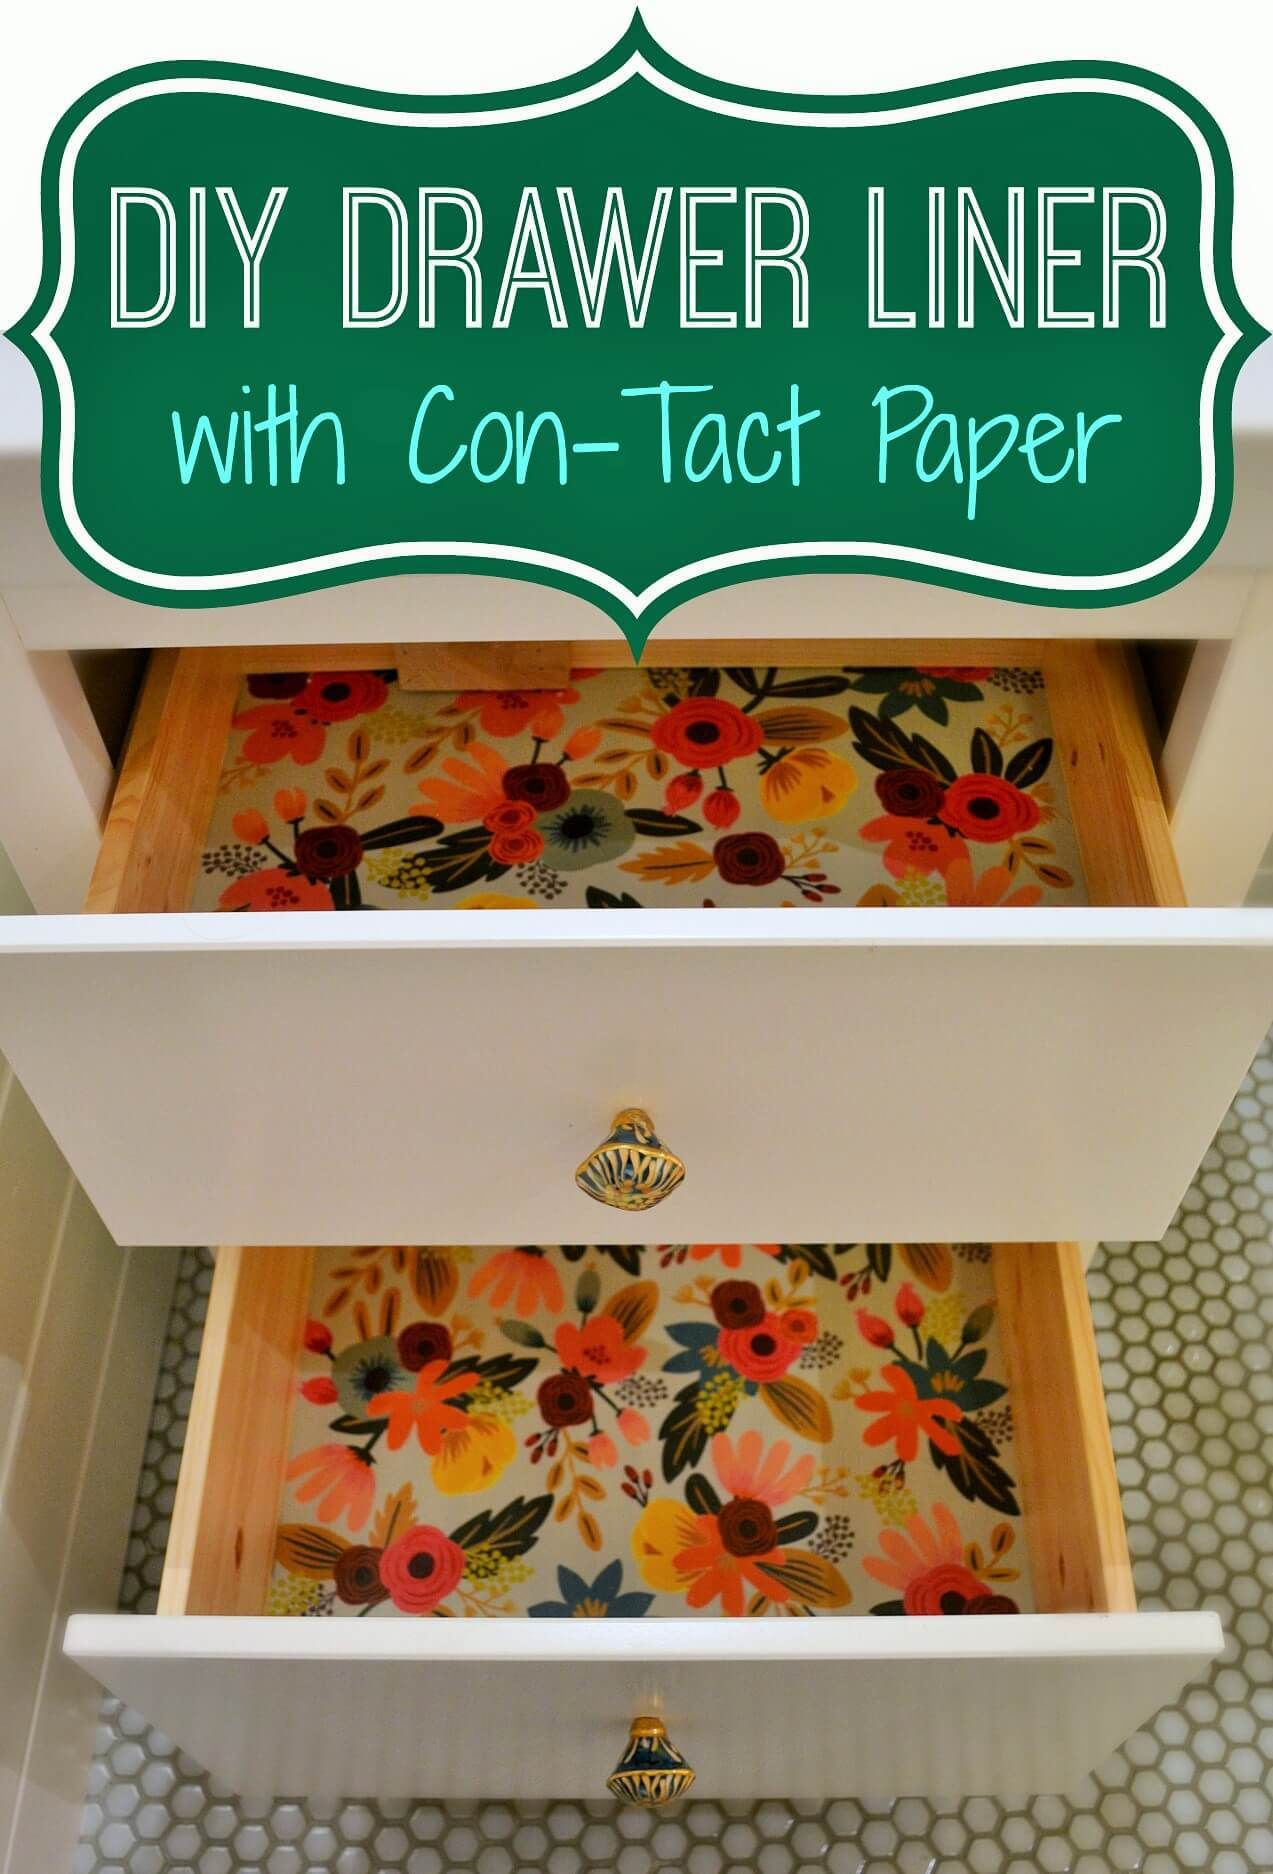 Make Your Own Drawer Liner Quick Tip Tuesday Diy Drawer Liners Drawer Liner Paper Drawer Liner